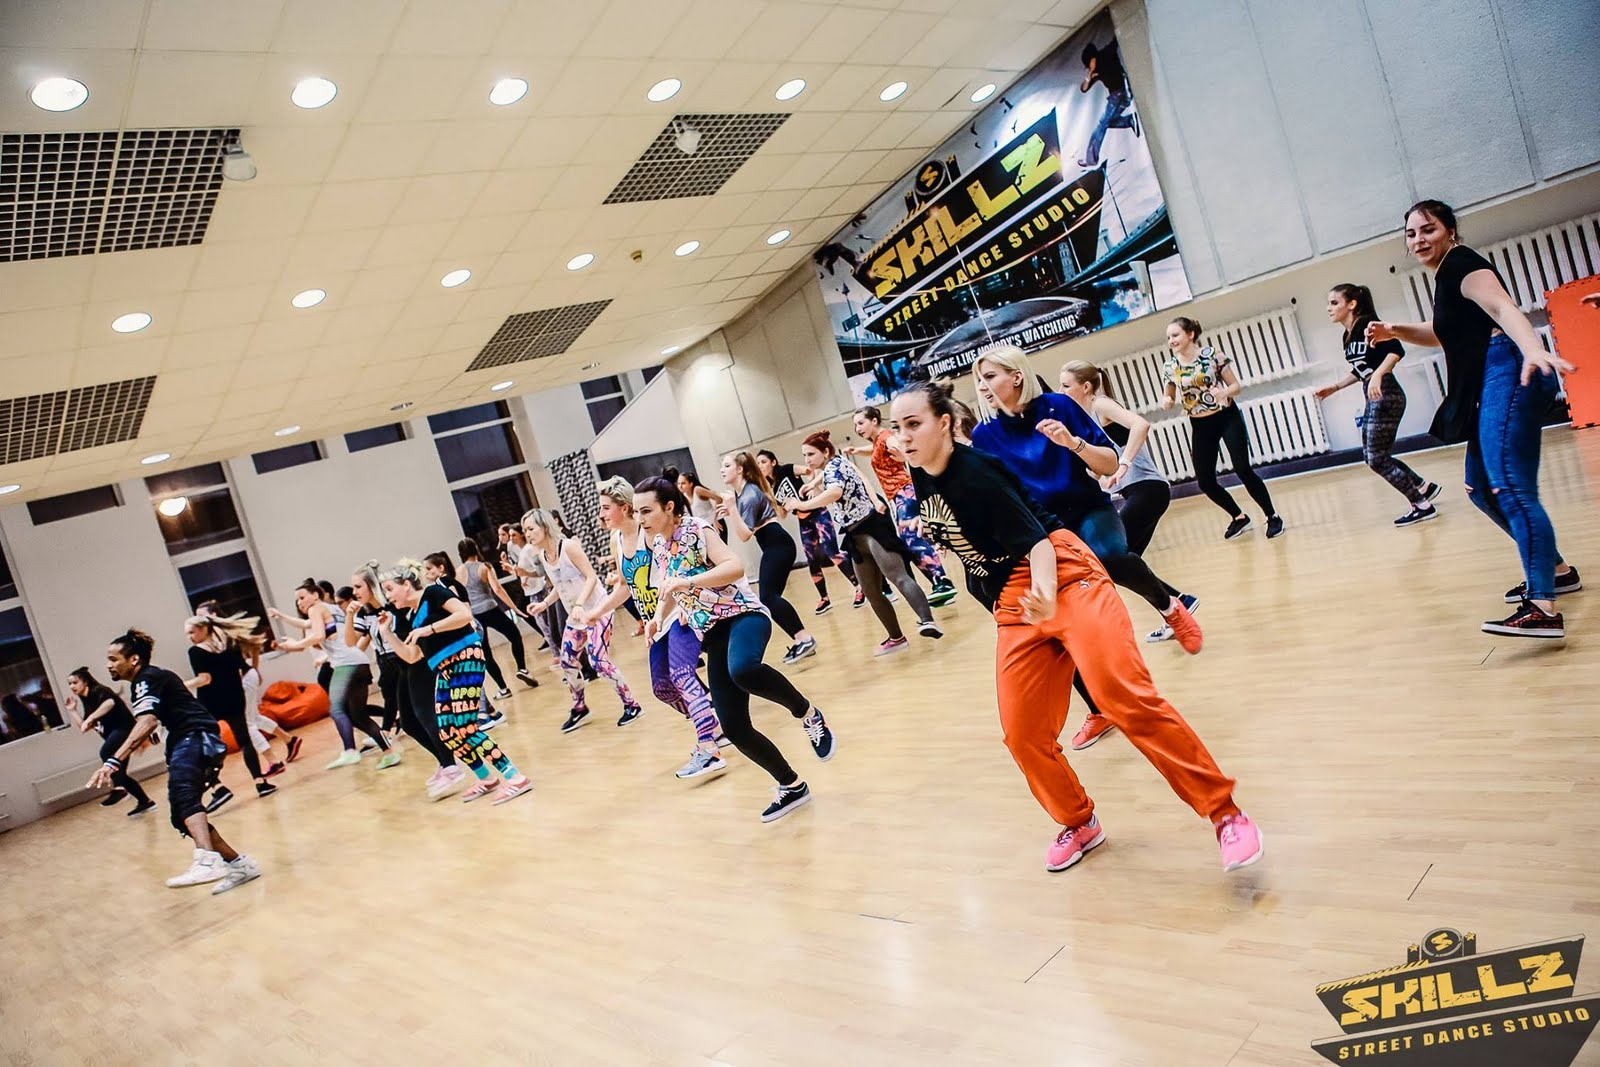 Dancehall workshop with Jiggy (France) - 30.jpg